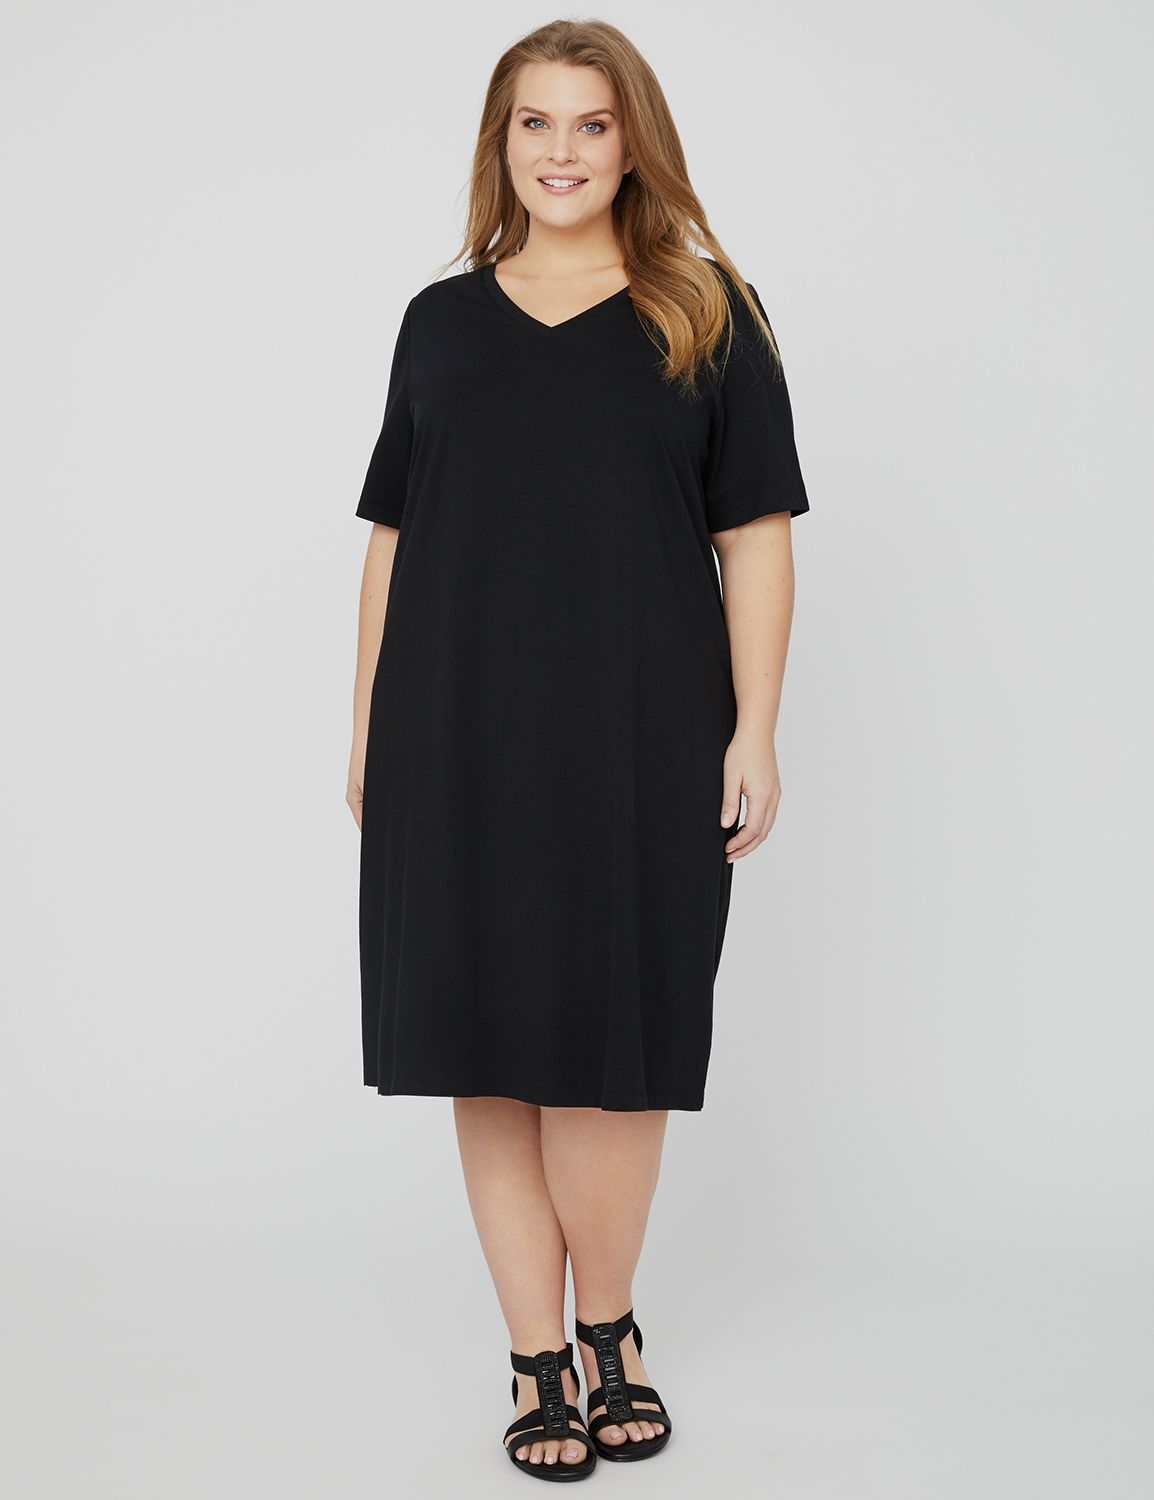 Suprema V-Neck Dress 1090900 Suprema V'Neck Dress MP-300104258